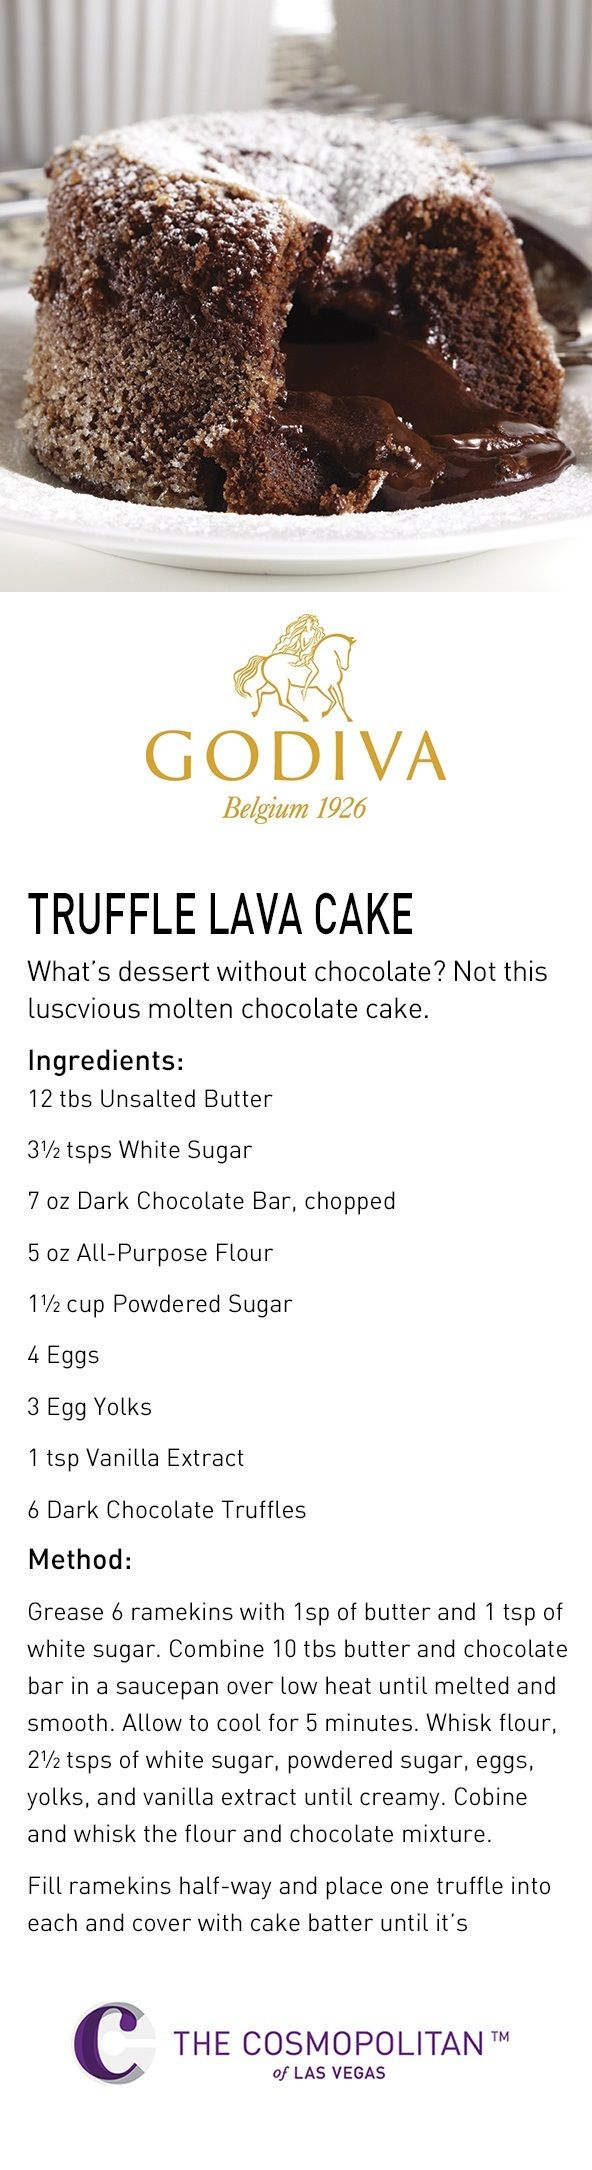 What's dessert without chocolate? Definitely not this molten lava cake made with @GODIVA chocolate.